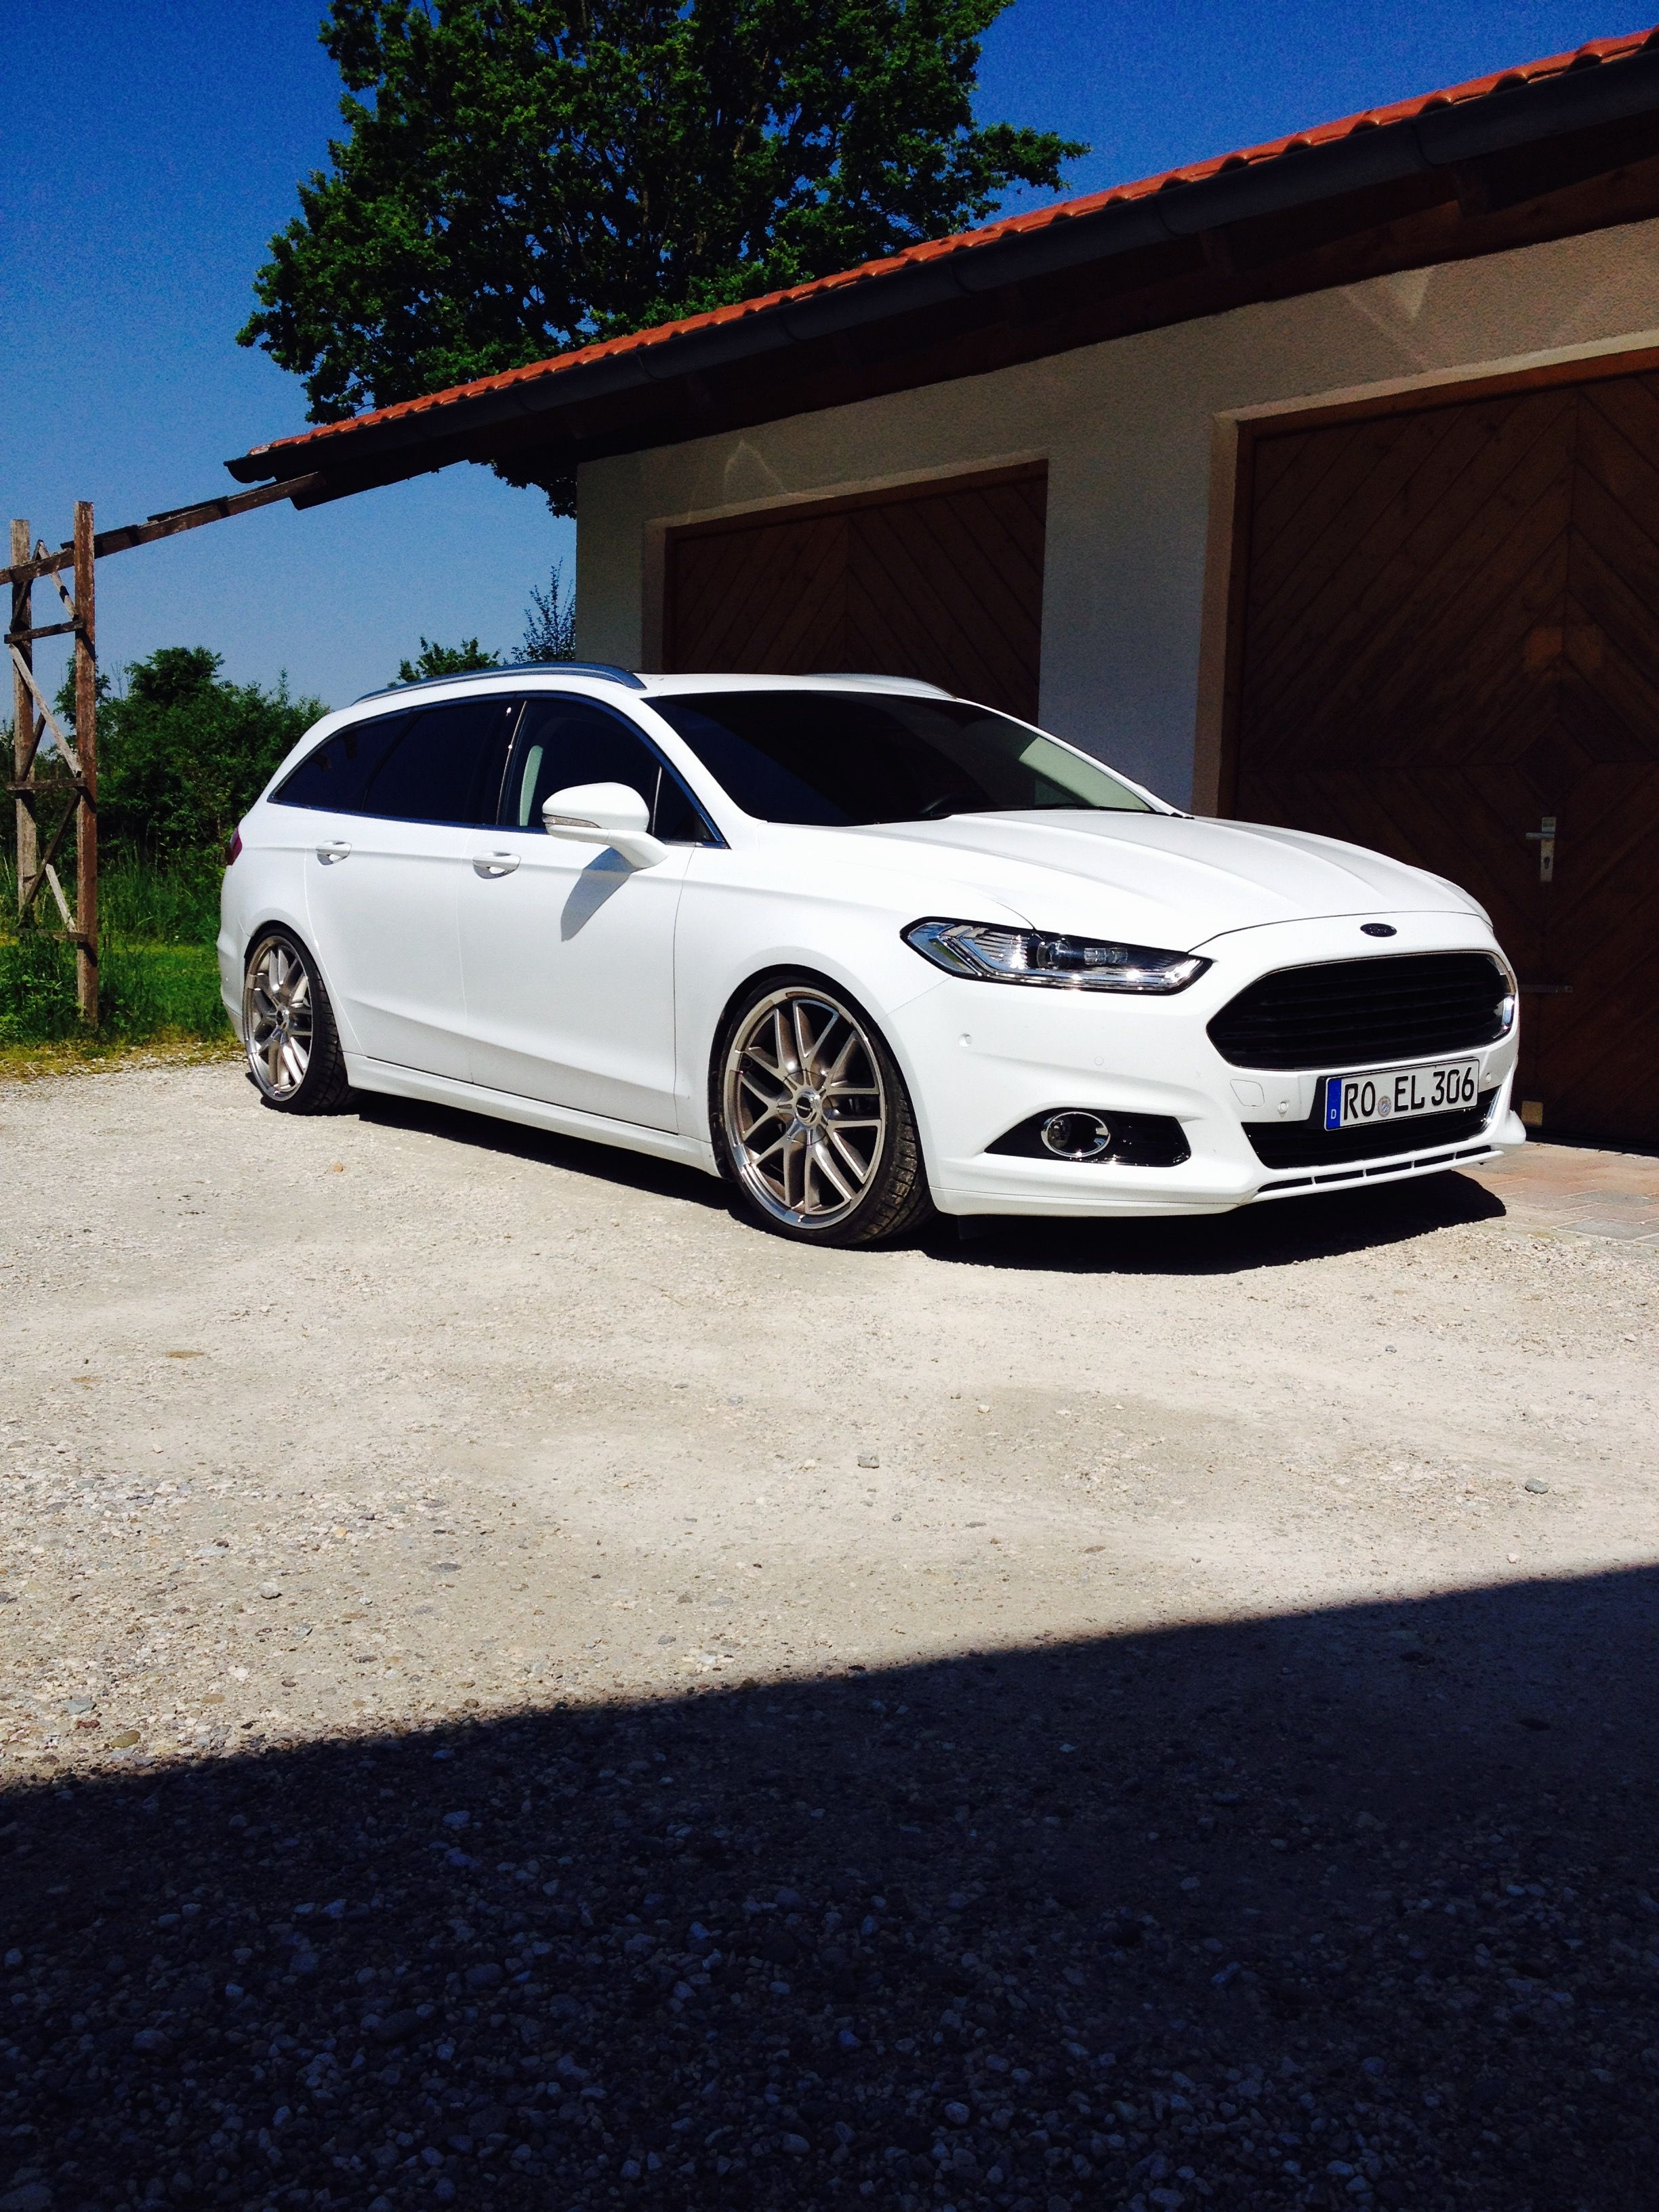 Mondeo Ford Mondeo Wagon Ford Fusion Ford Mondeo